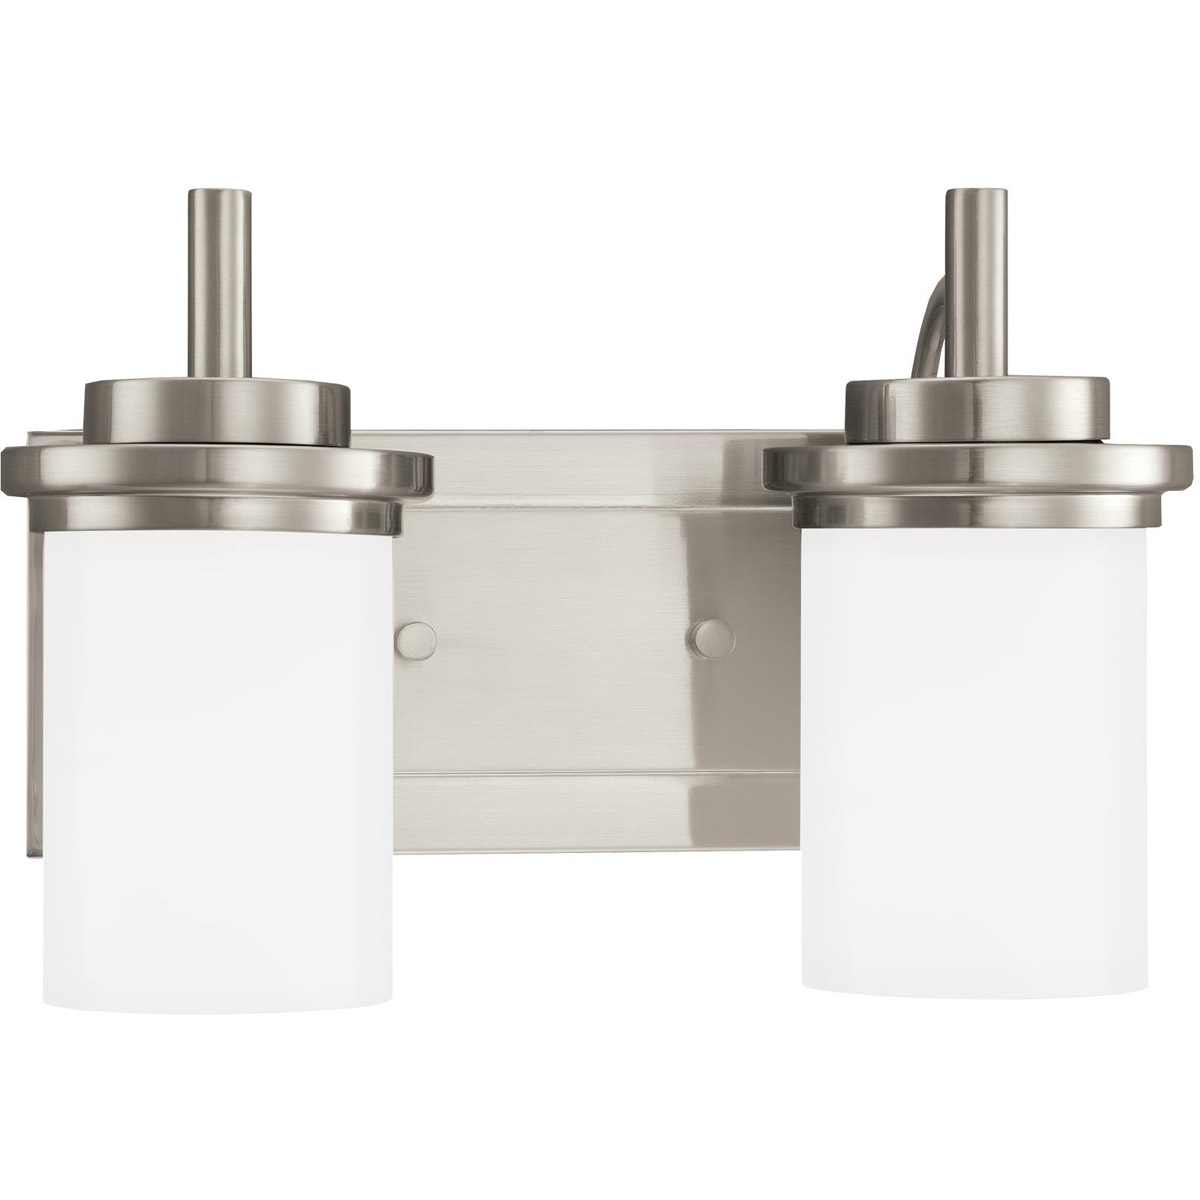 Sea Gull 44661-962 Winnetka 2 Light 14 inch Brushed Nickel Bath Vanity Wall Light in Satin Etched Glass, Standard photo